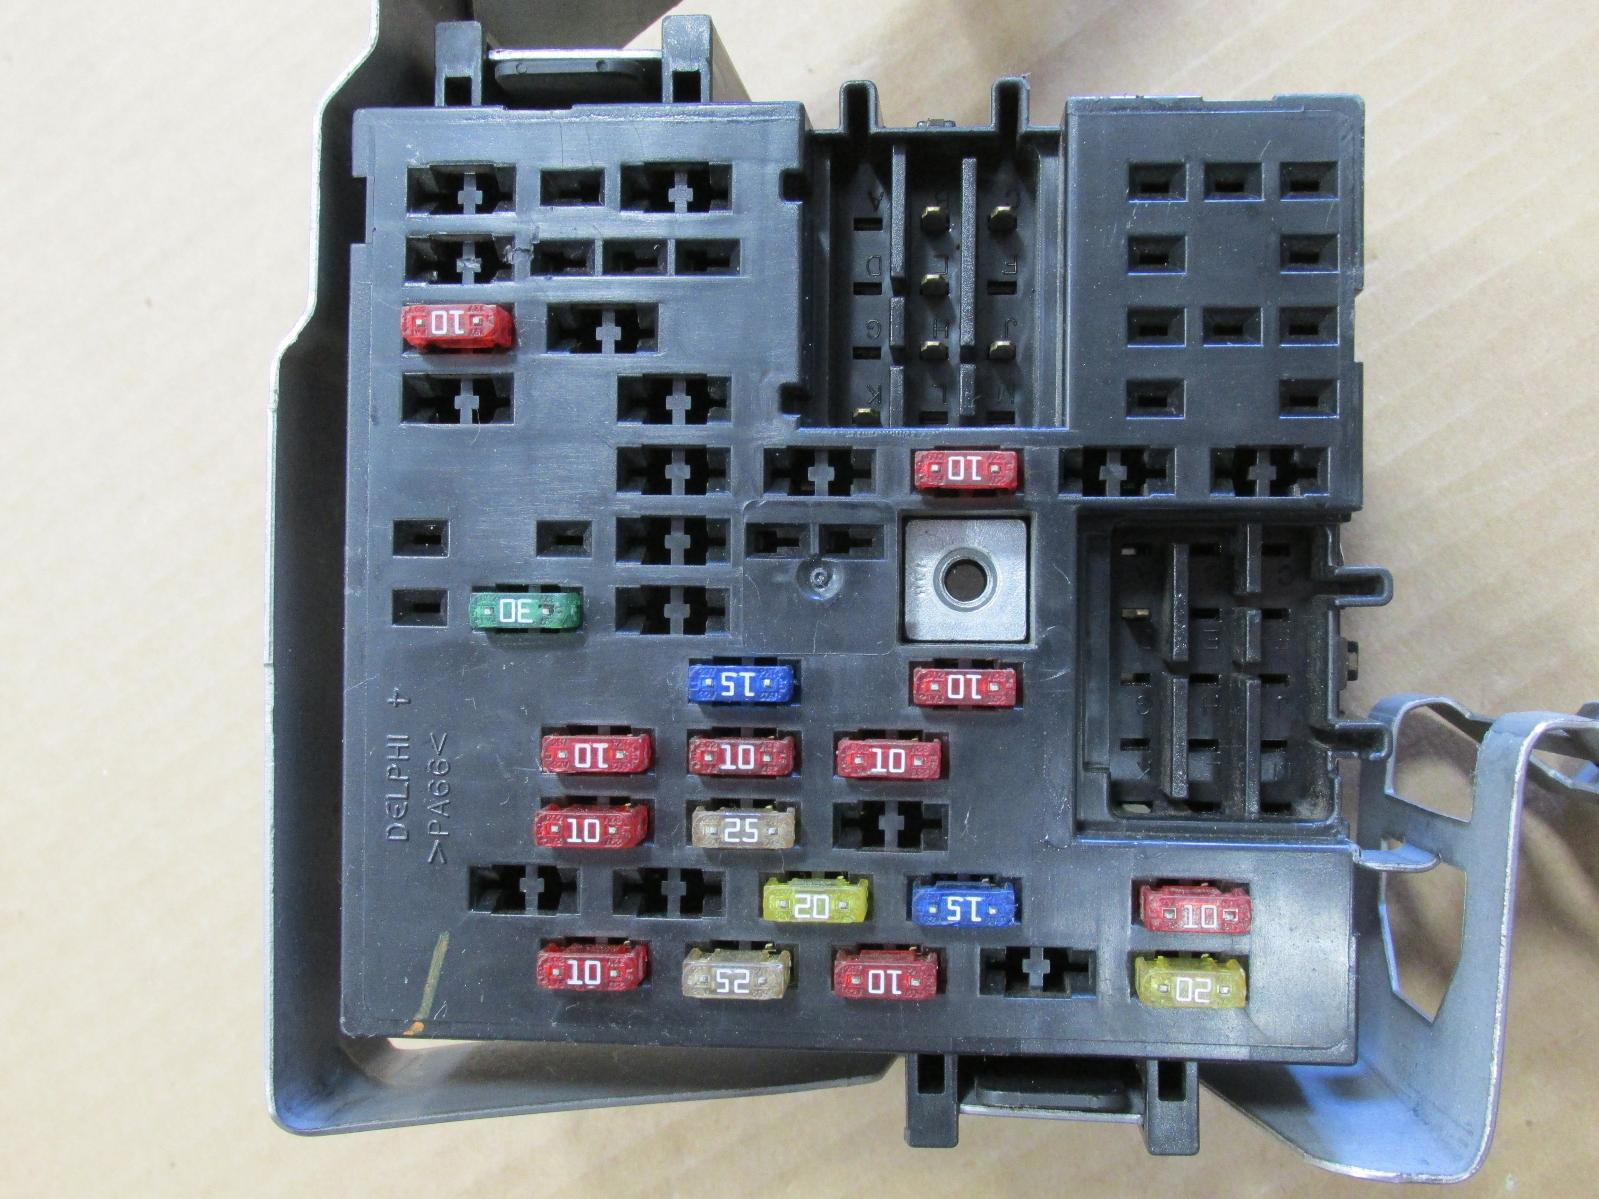 2000 00 chevrolet silverado fuse relay box 15328863 04 ebay 1974 chevy truck fuse box 1962 chevy truck fuse box